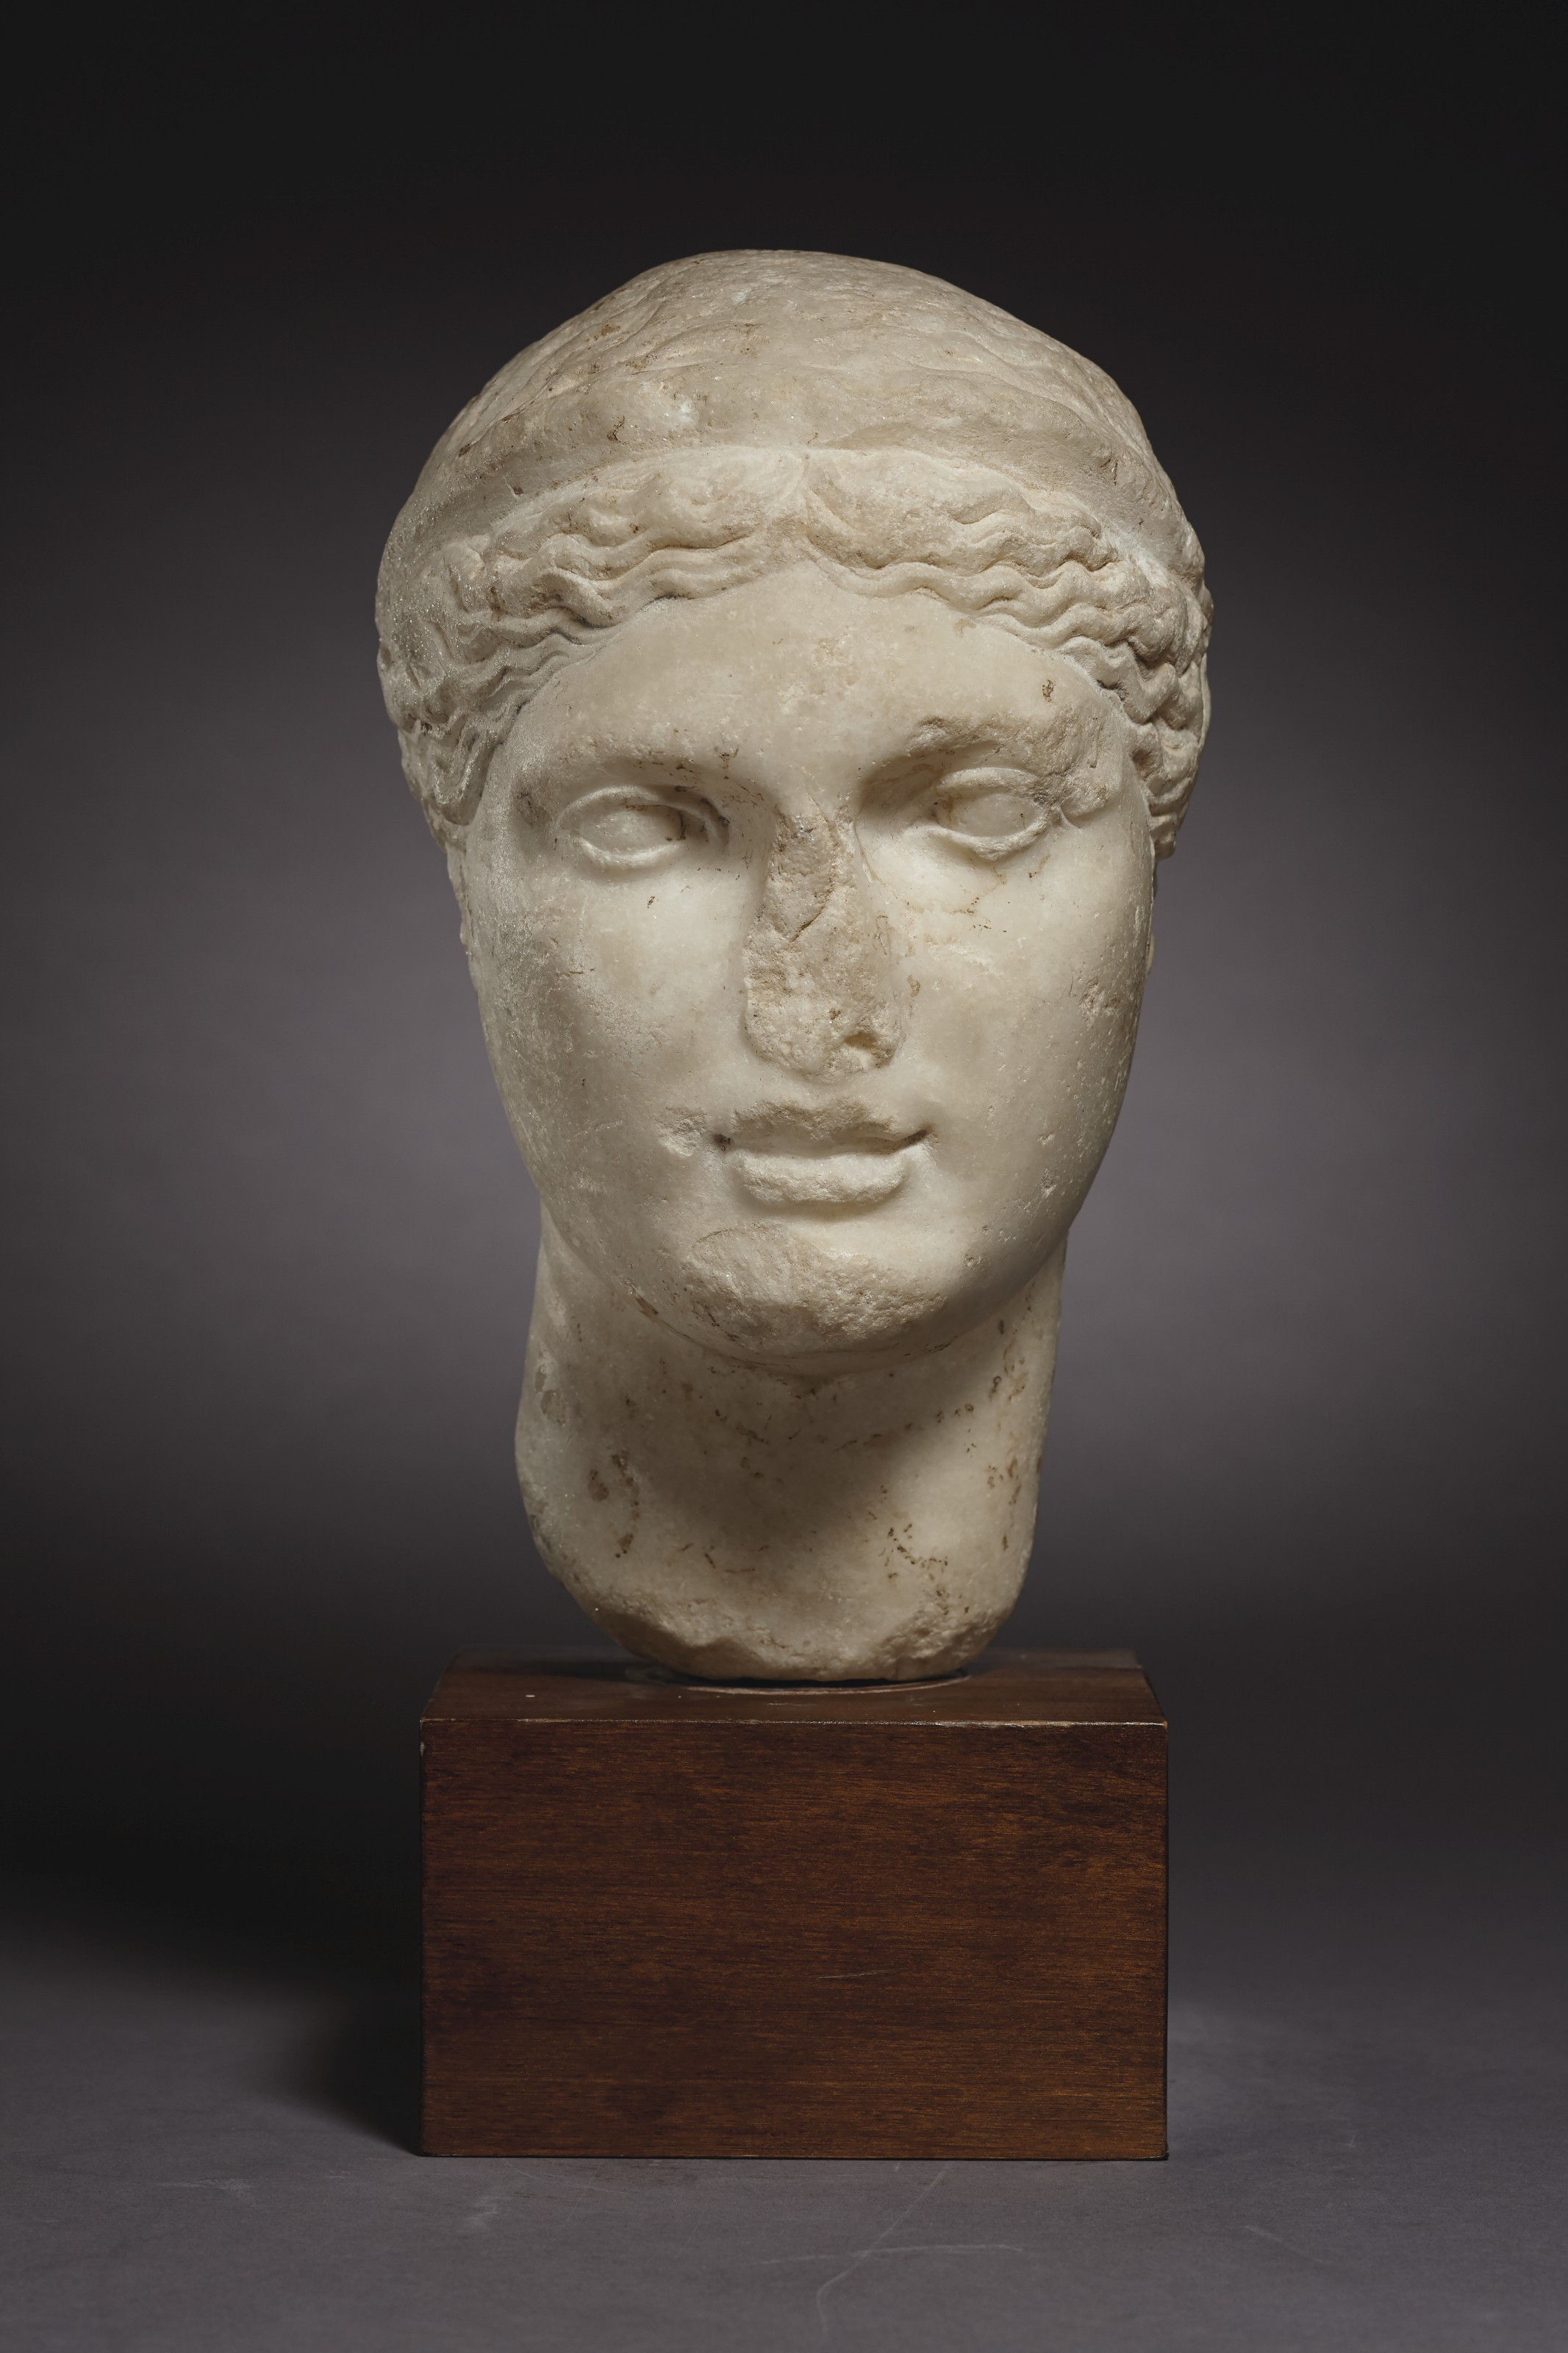 Faces of the Past: Ancient Sculpture from the Collection of Dr. Anton Pestalozzi